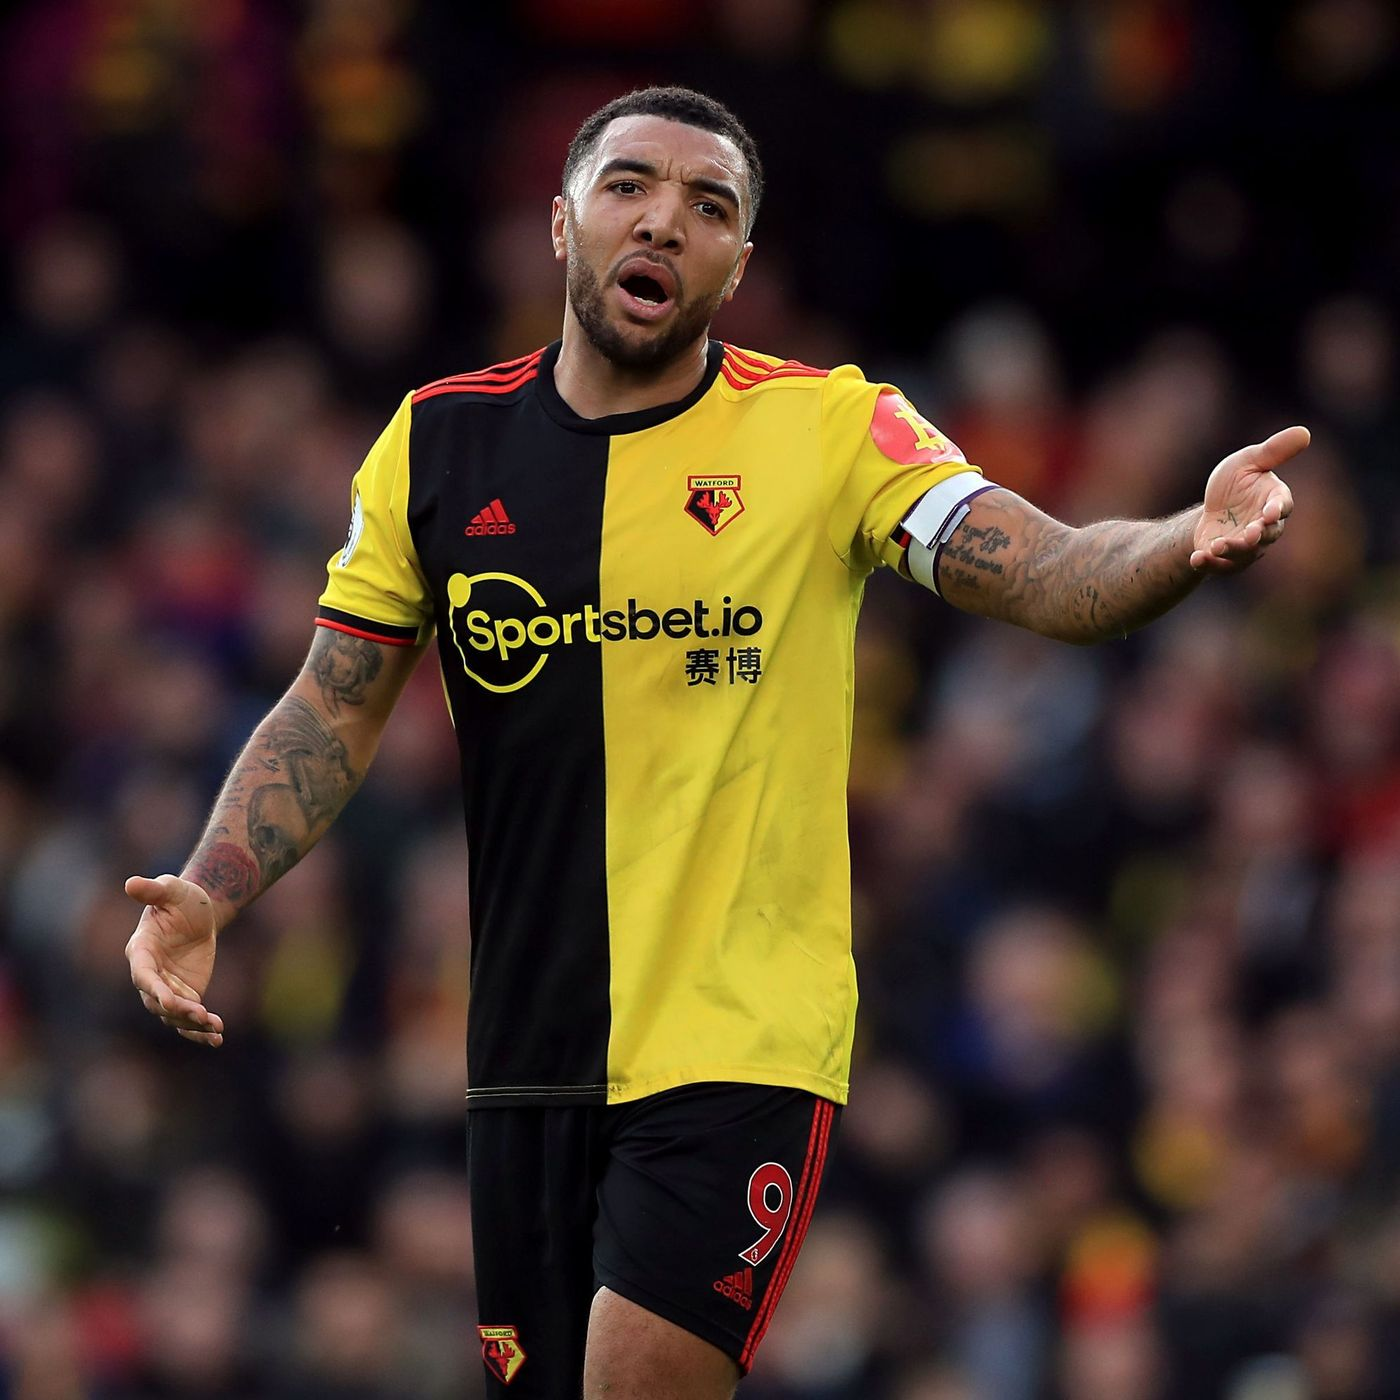 Morning Bulletin: Twists in Timo Werner saga | Defining Premier League meeting | Troy Deeney 'sorry for Liverpool'